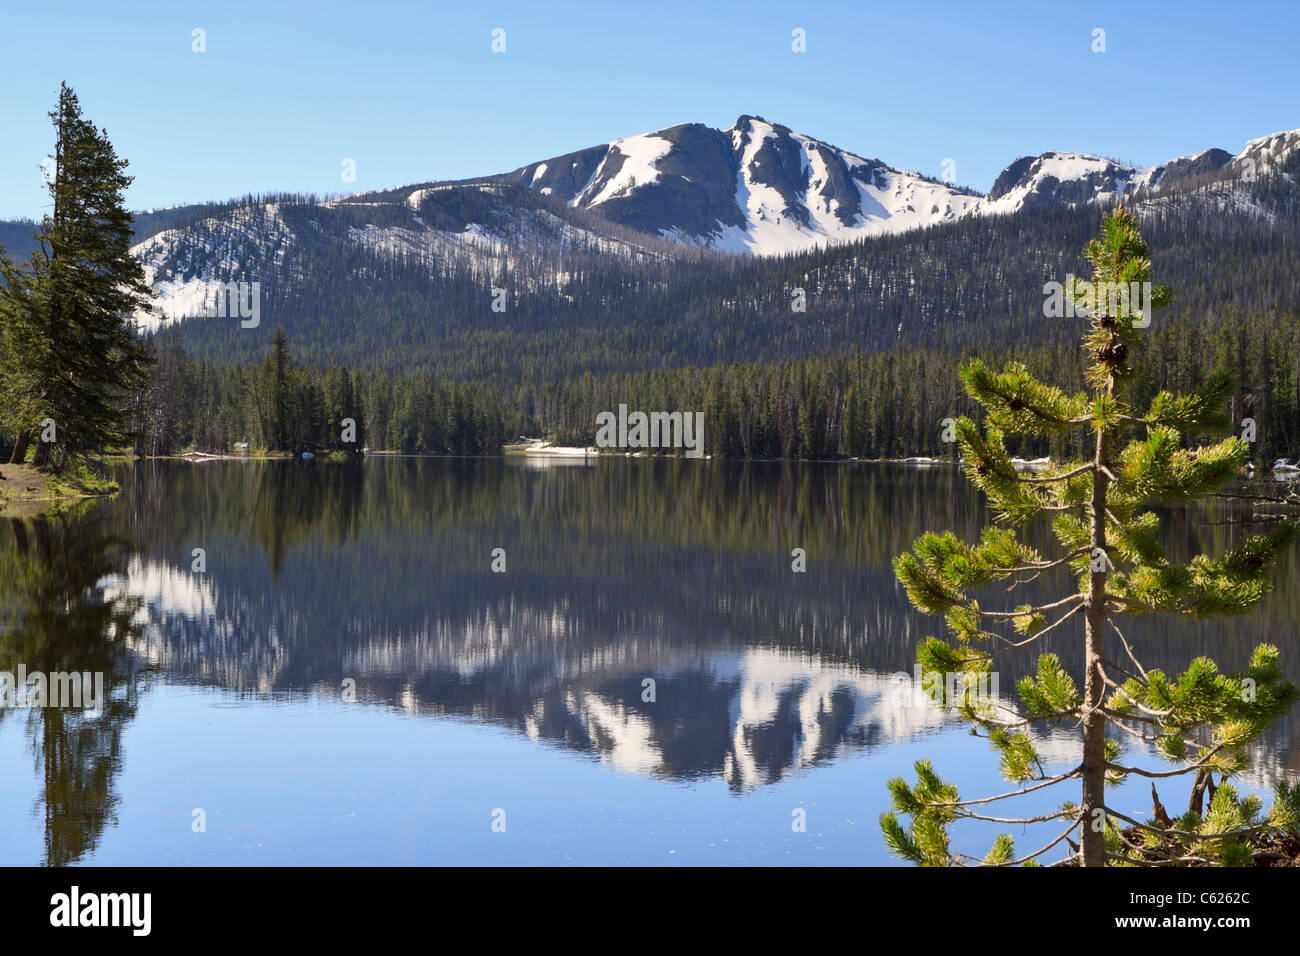 Sylvan Lake, Yellowstone National Park, Wyoming. Snow covered mountains reflected in still water near Sylvan Pass. Stock Photo